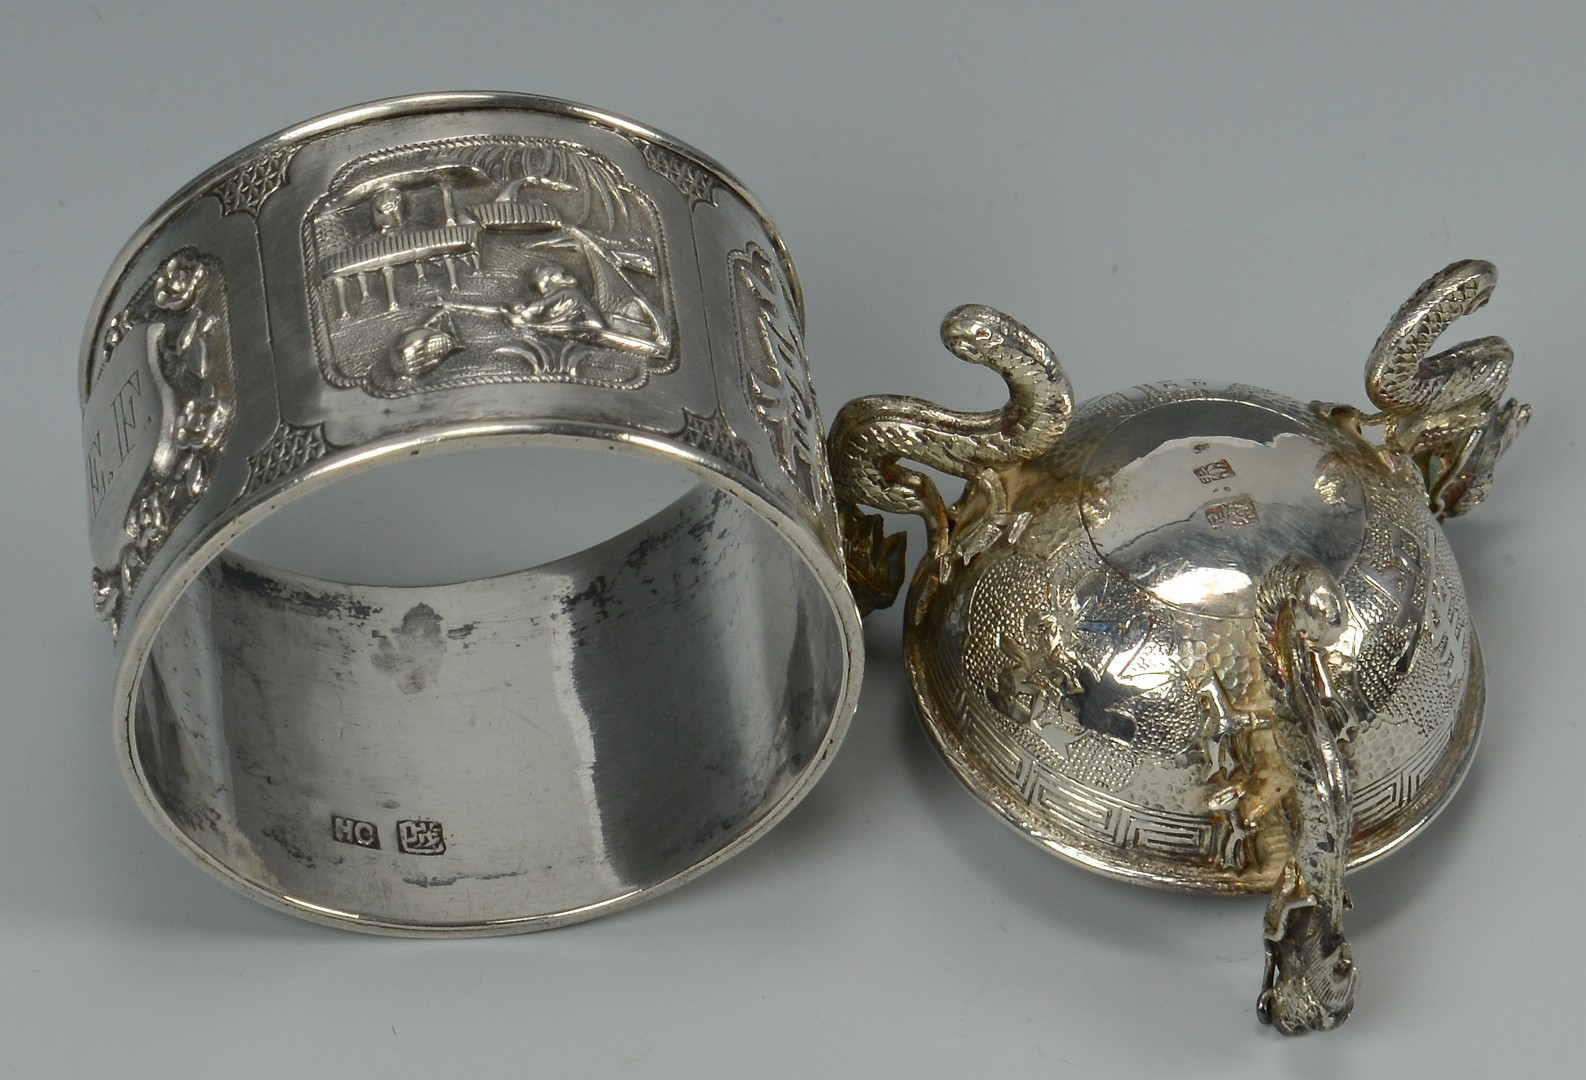 Lot 3594151: 4 Chinese Export Silver table items